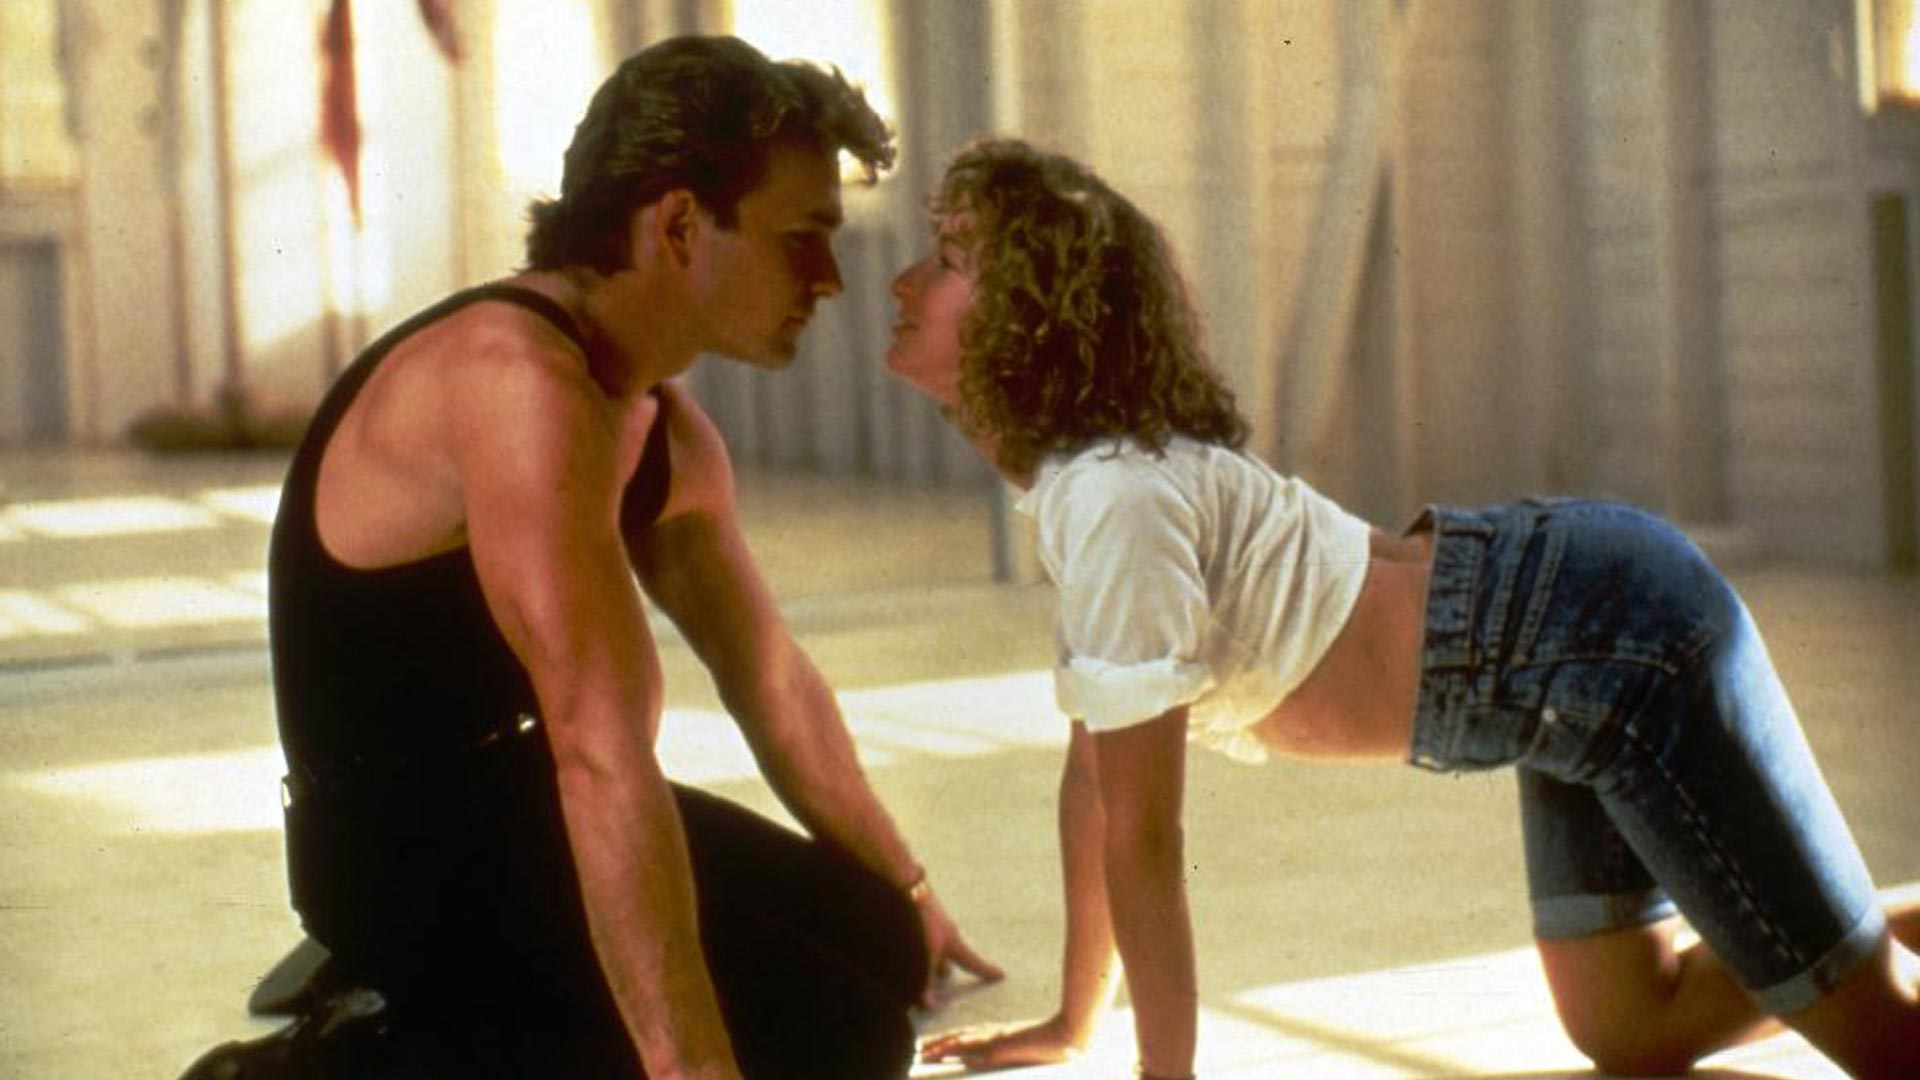 Why the Dirty Dancing Remake will Suck – Dirty Dancing (1987)